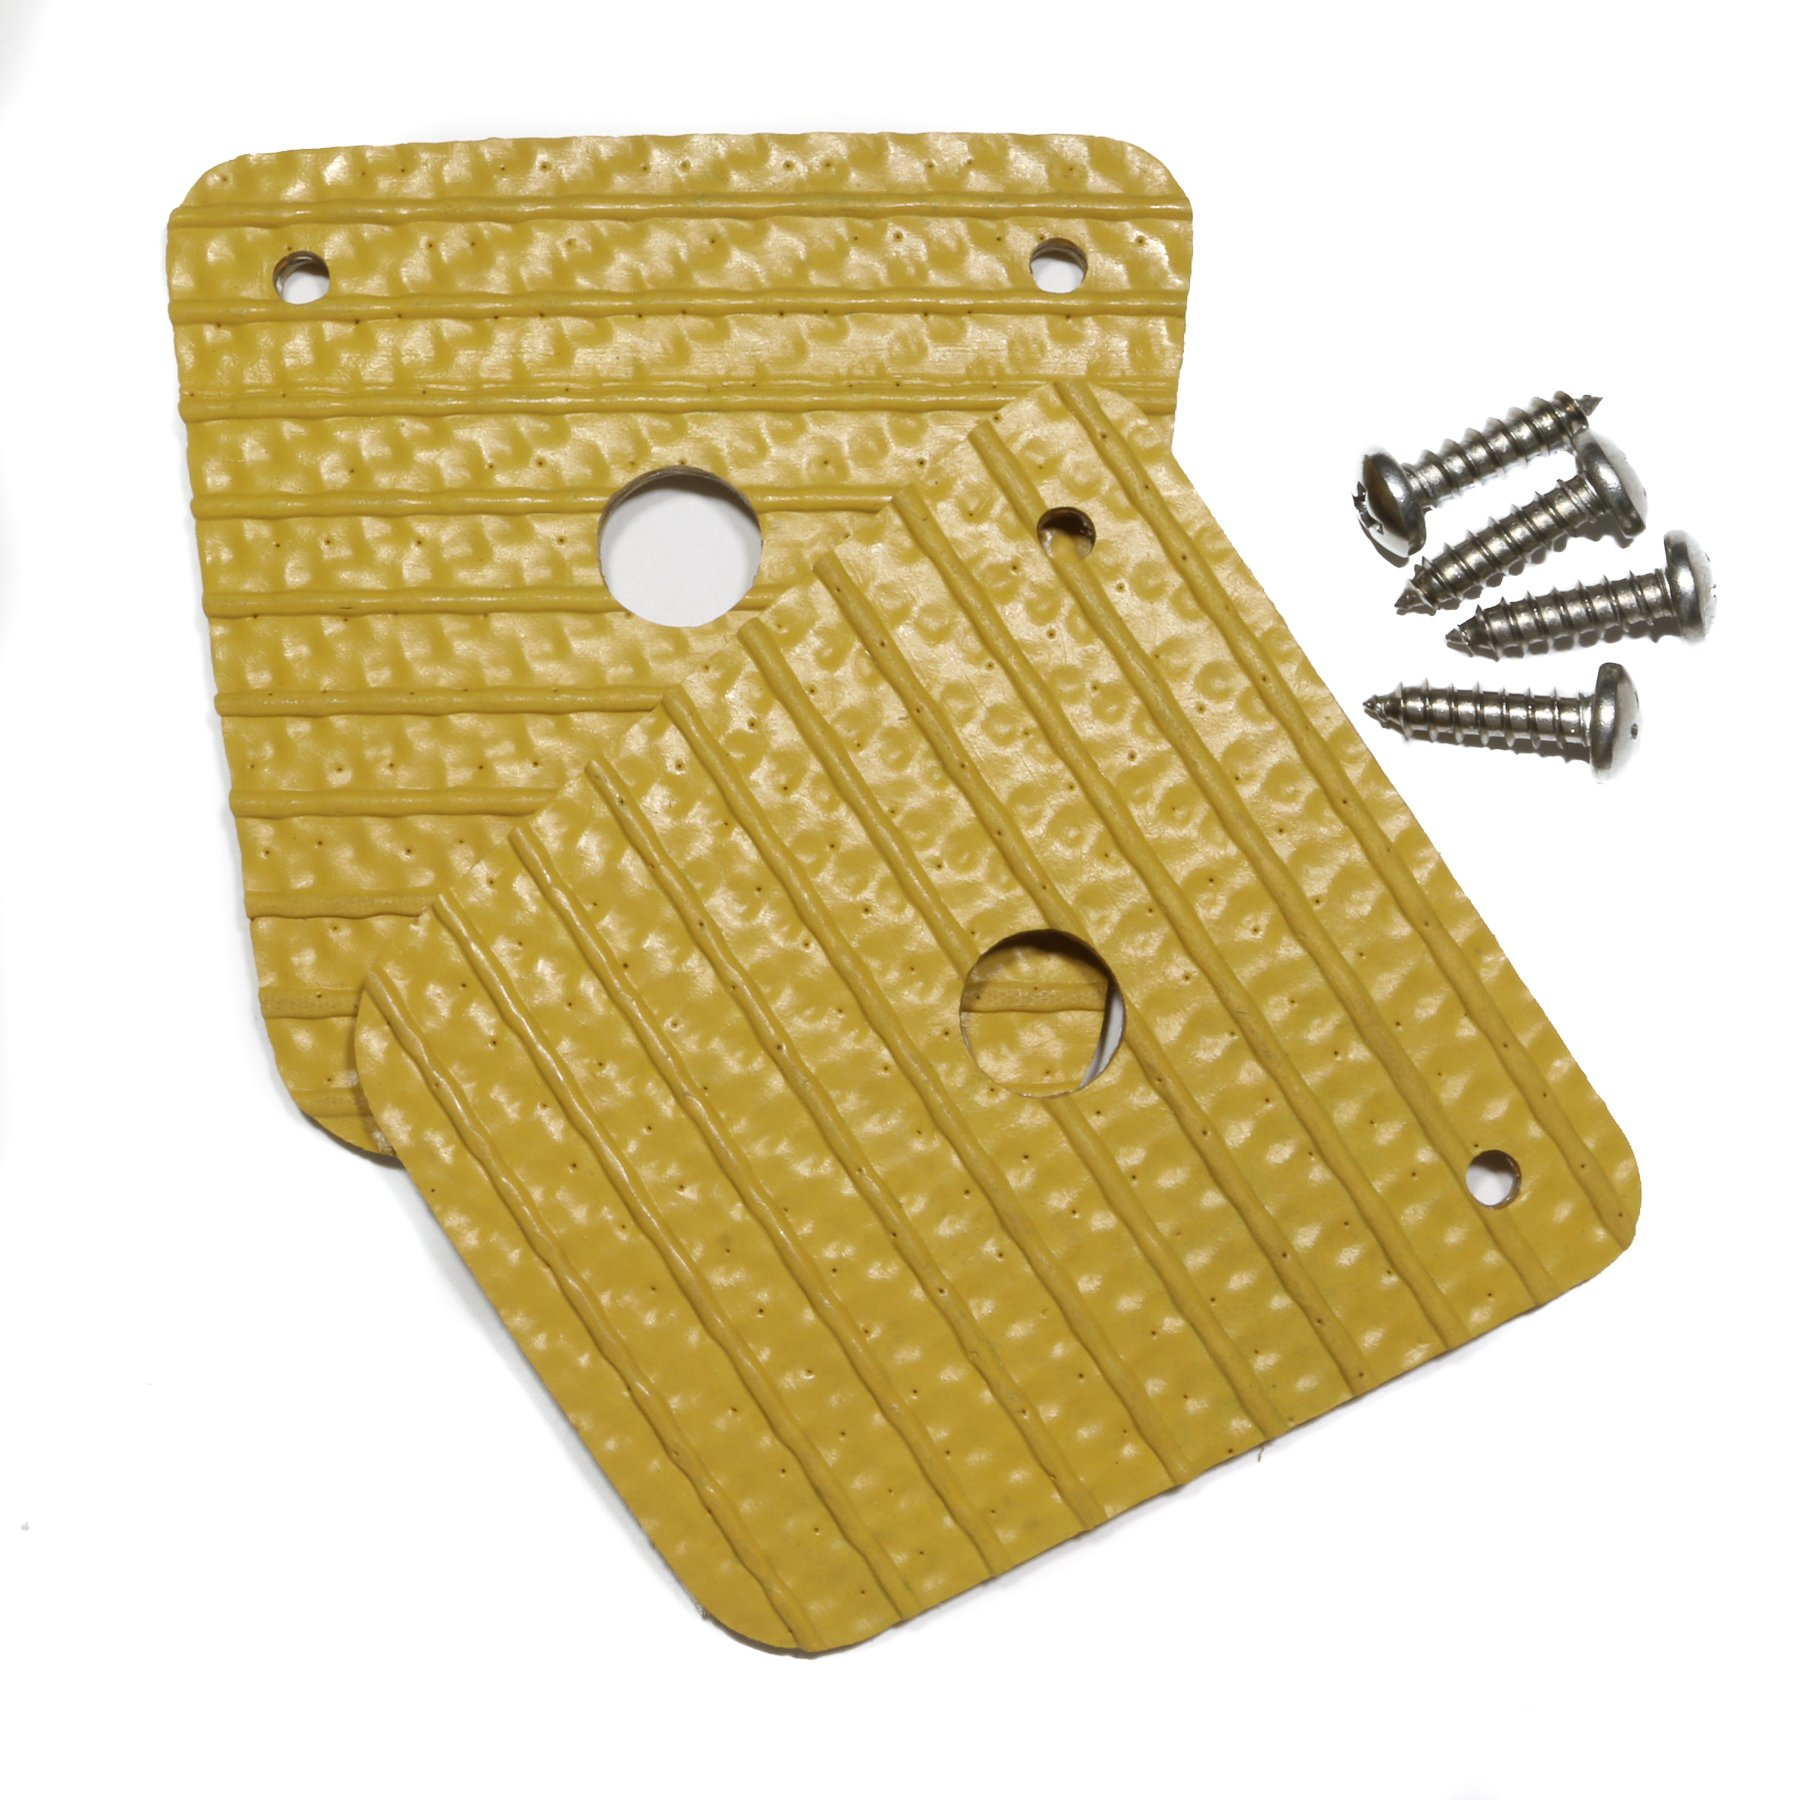 Unhinged Solutions Igloo Cooler Replacement Latches (Set of 2) - Unbreakable, Repurposed Fire Hose by Unhinged Solutions (Image #1)